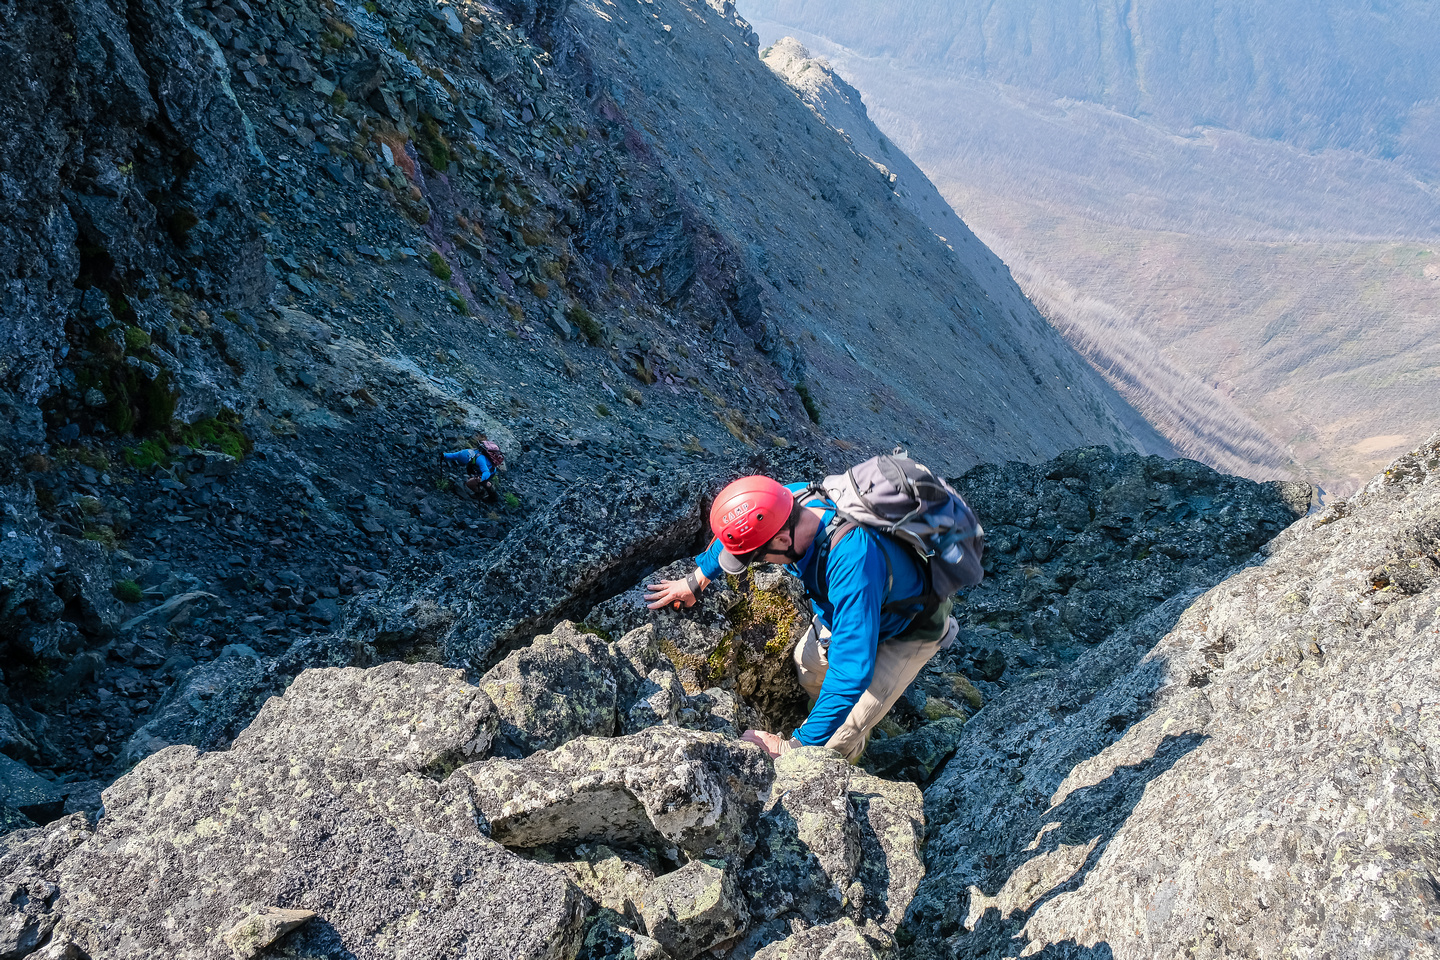 The gully is easy to moderate scrambling.